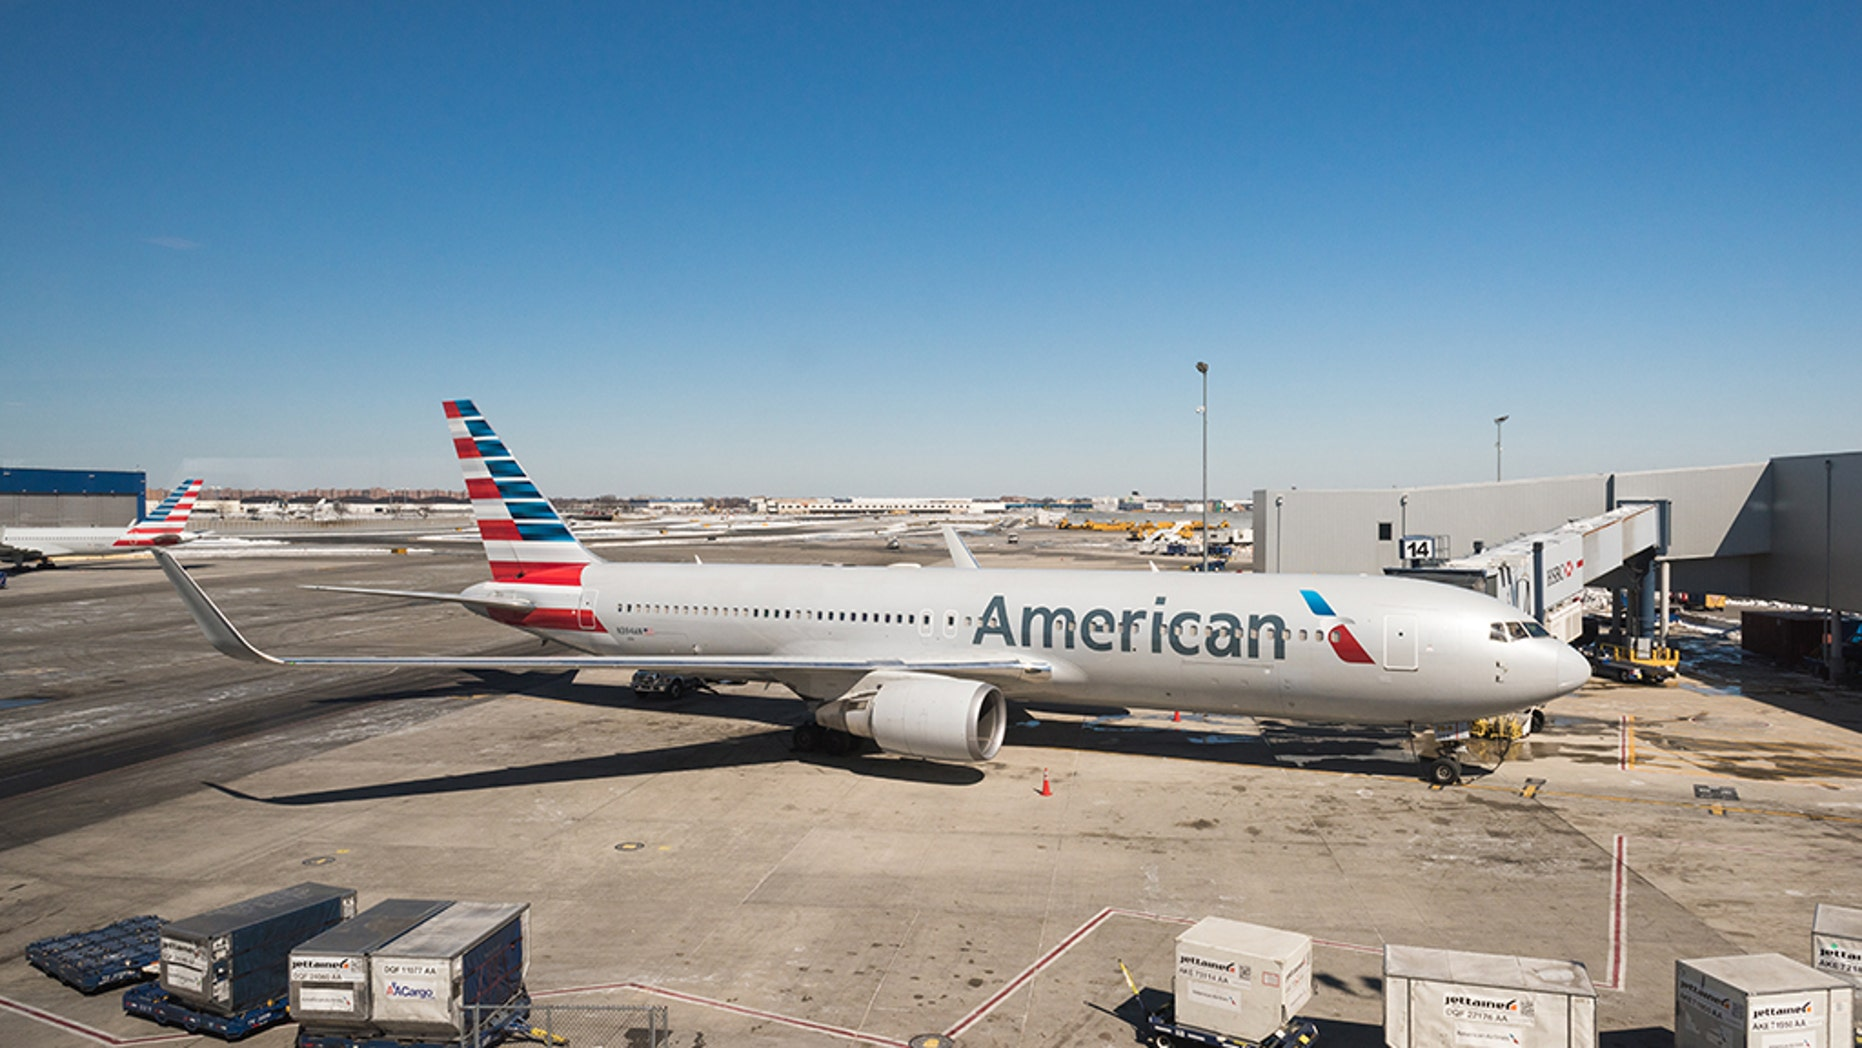 American Airlines removed a family from a plane on Wednesday after passengers and crew members complained one of the family members smelled.